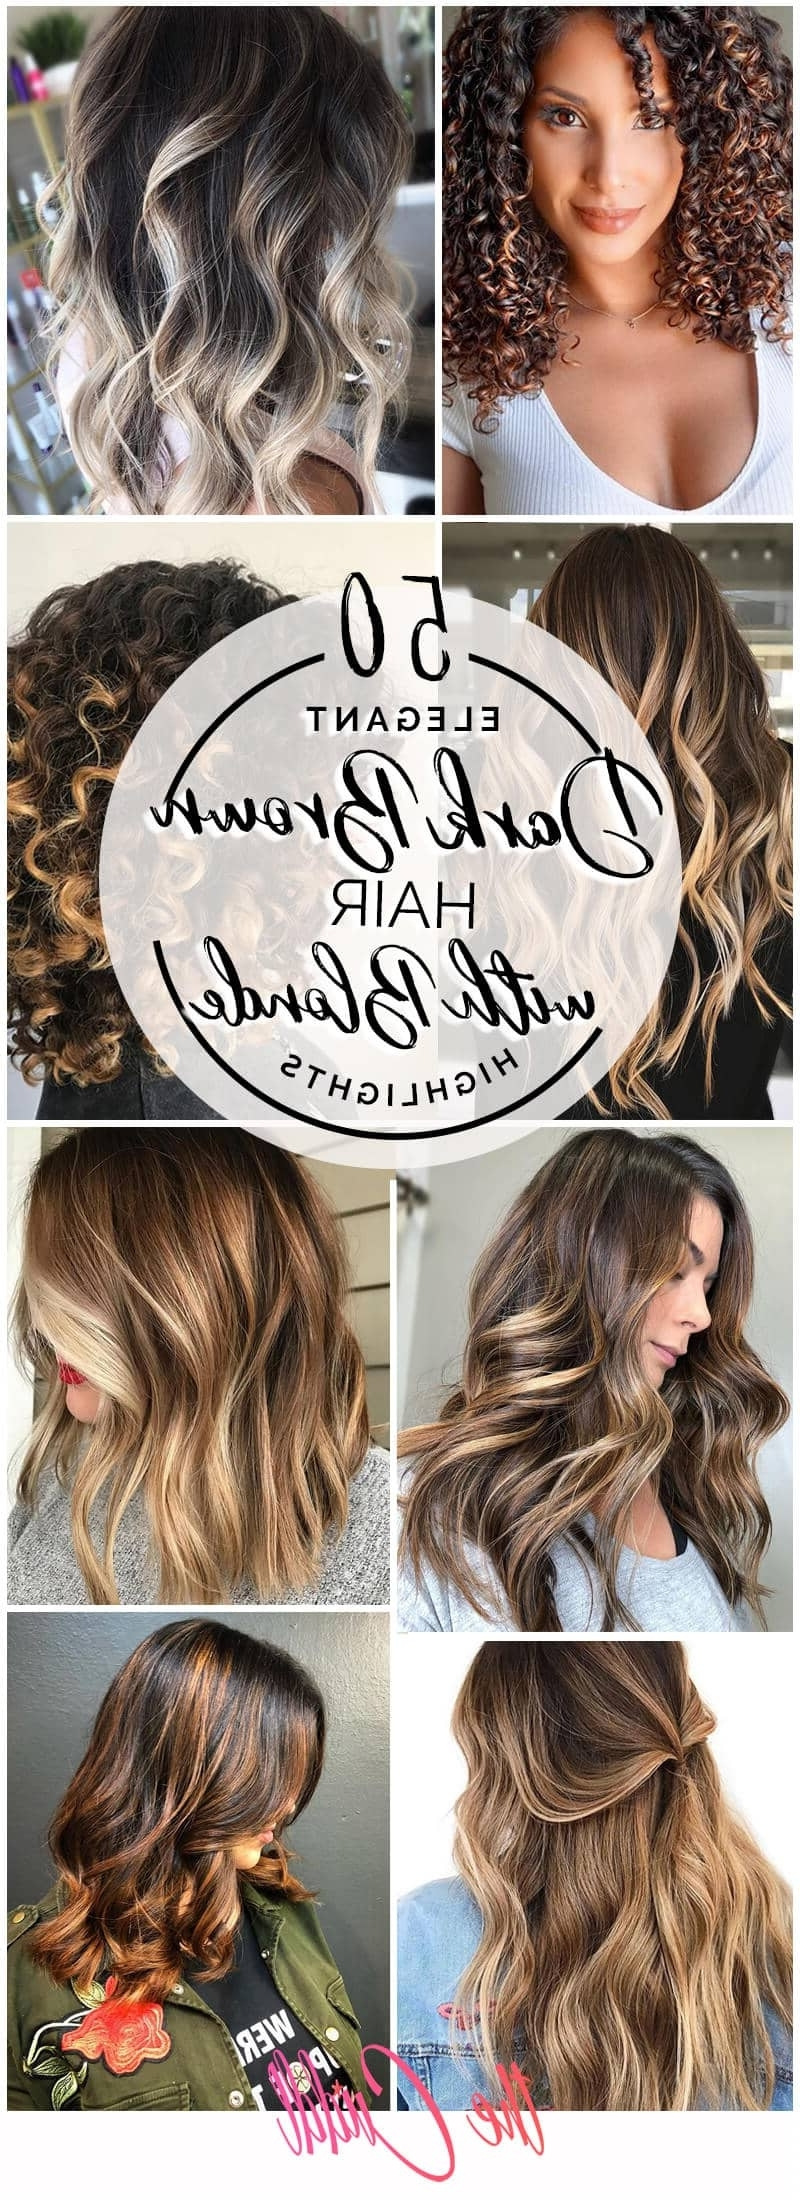 50 Best And Flattering Brown Hair With Blonde Highlights For 30+ Stunning Hairstyles For Medium Hair With Highlights